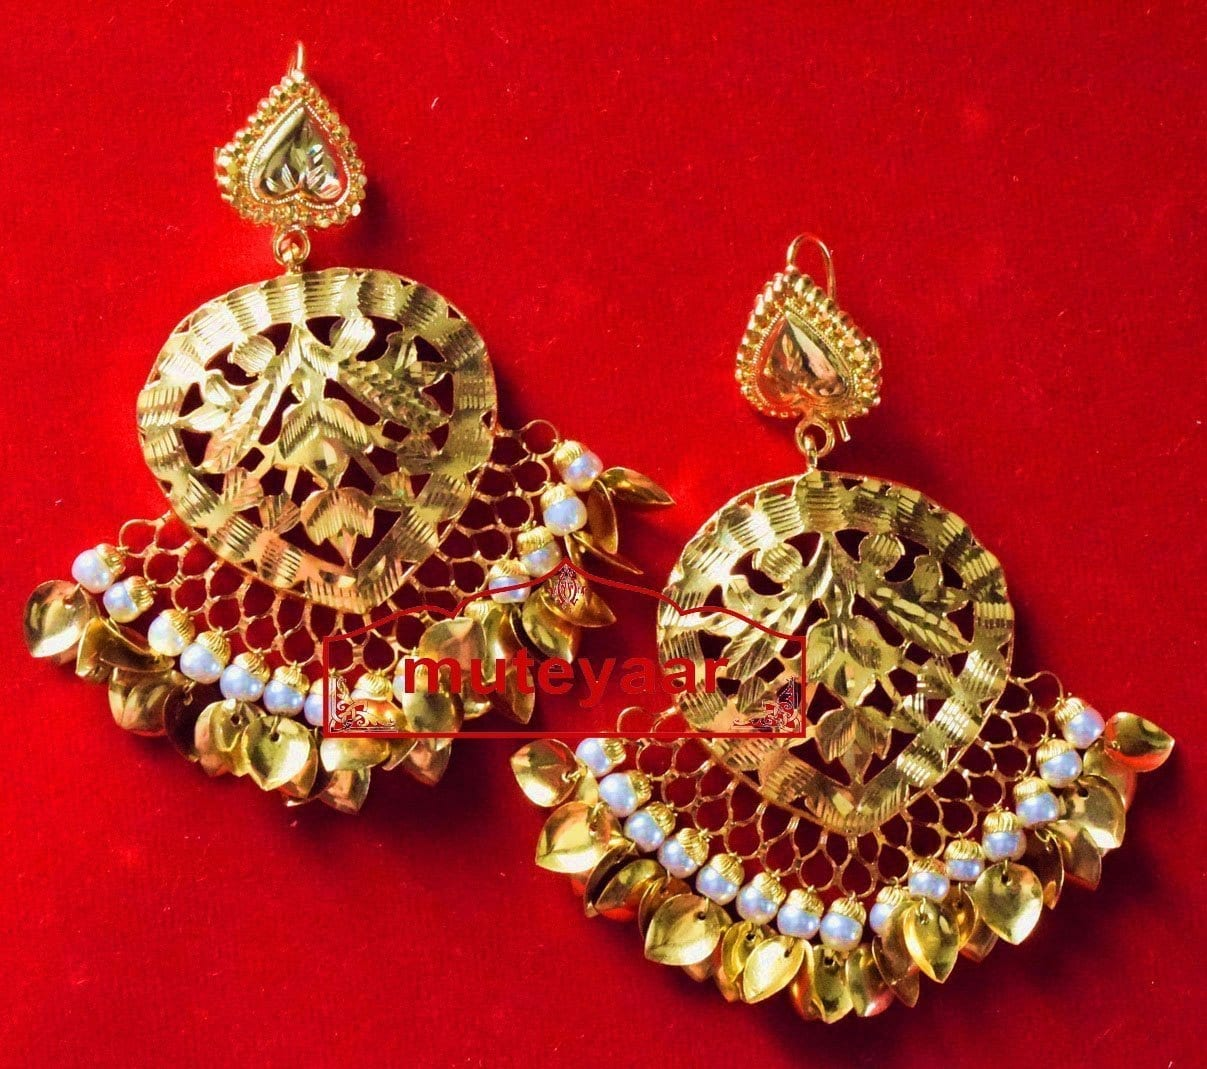 Hand Made 24 ct. Gold Plated Traditional Punjabi Jewellery Earrings Jhumka J0372 1